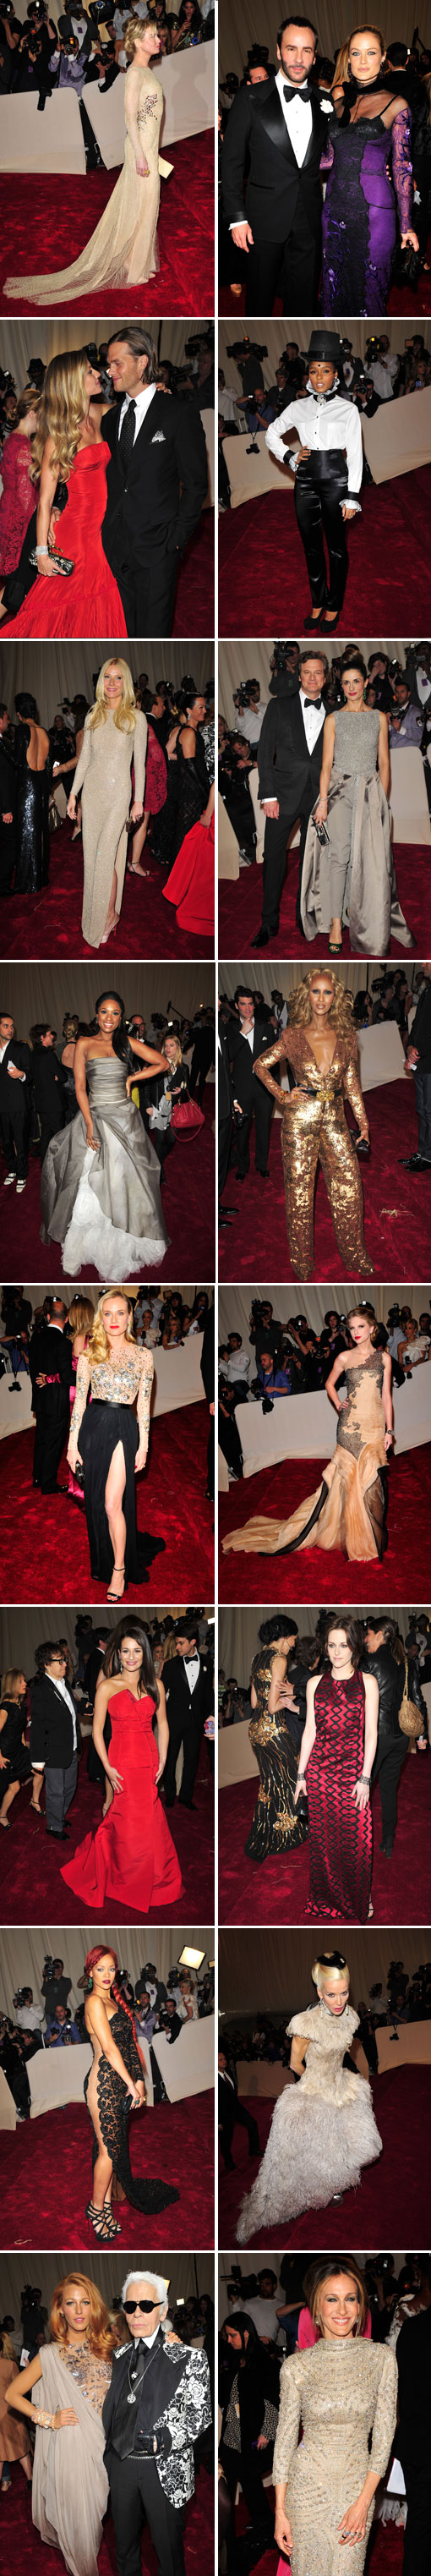 Red Carpet: Savage Beauty at The Met Costume Institute Gala